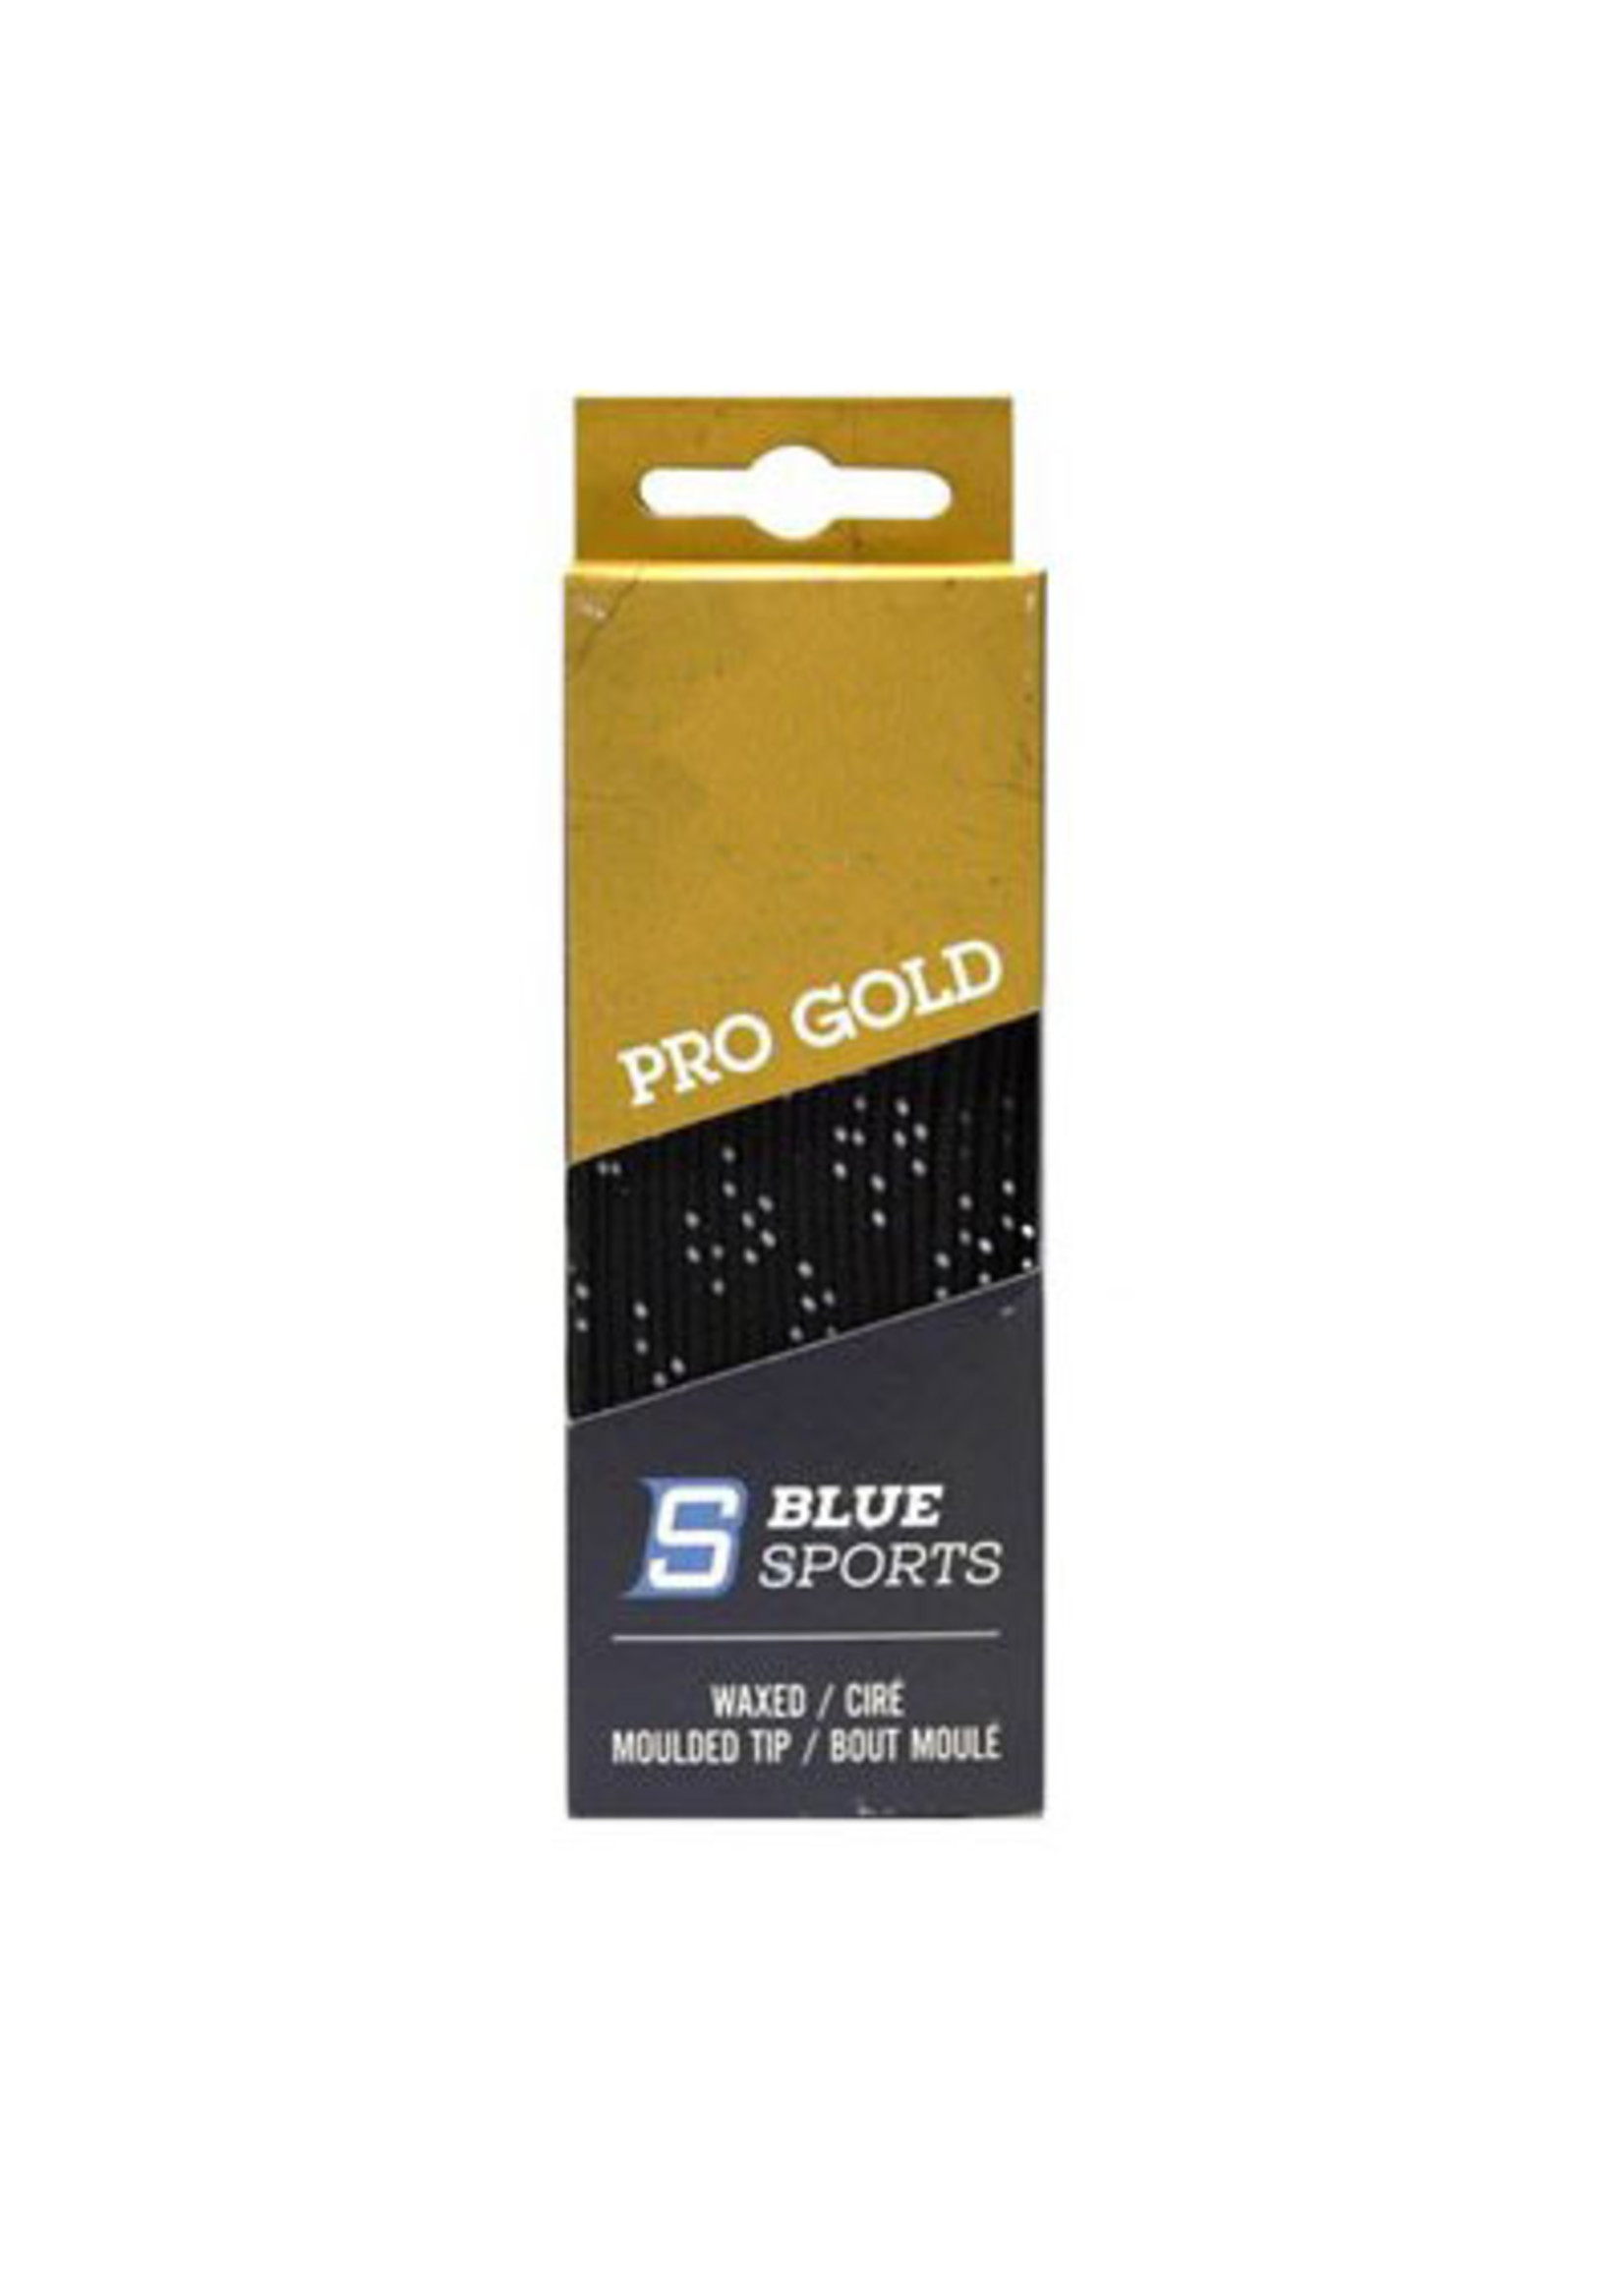 BLUE SPORTS PRO GOLD WAXED LACES